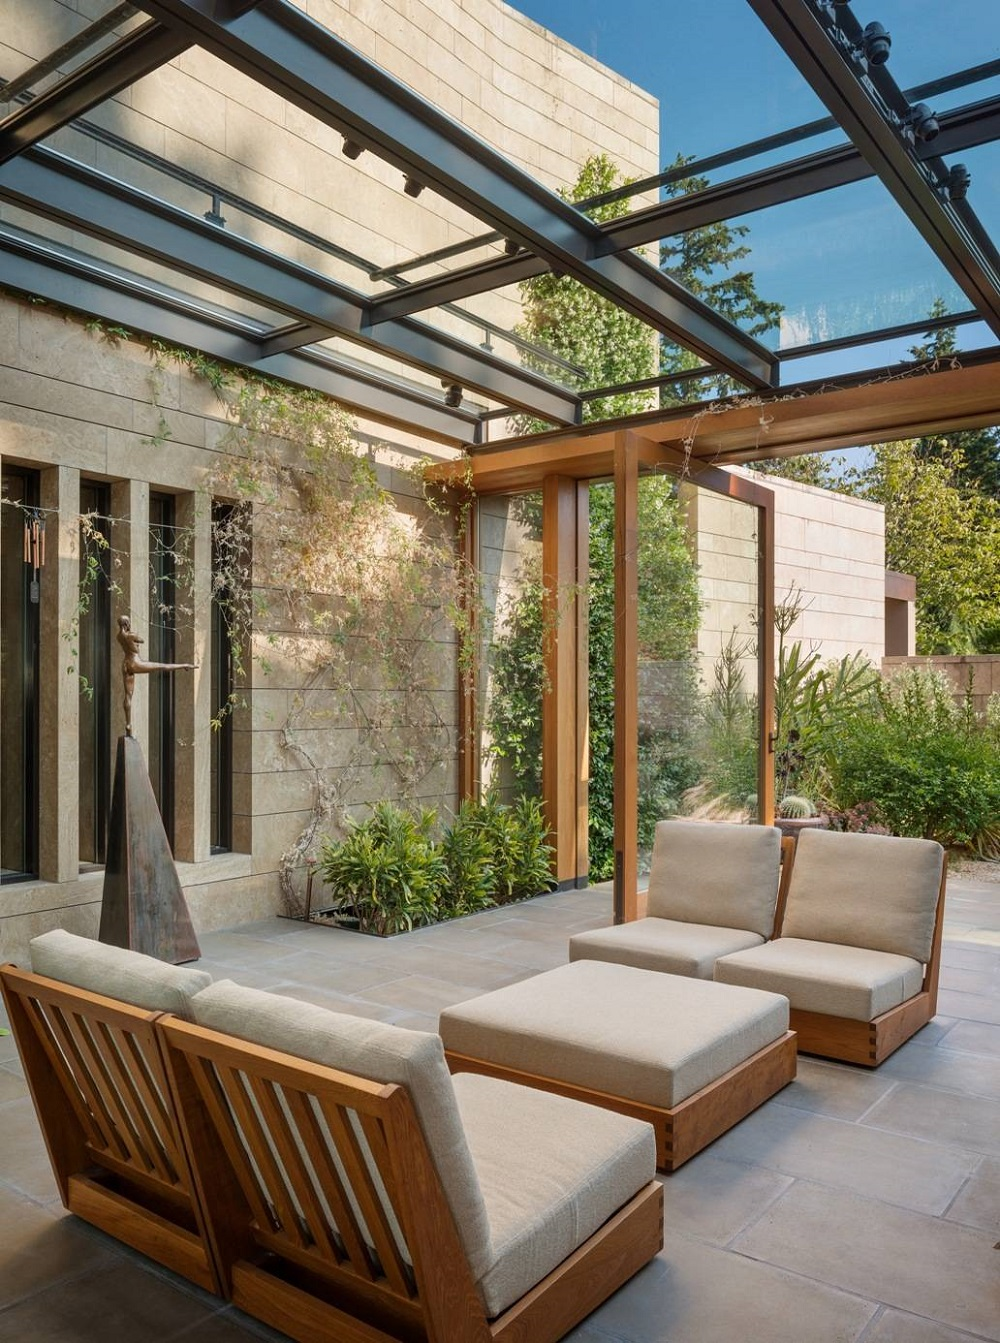 sr3 Cool porch and sunroom ideas to try in your home